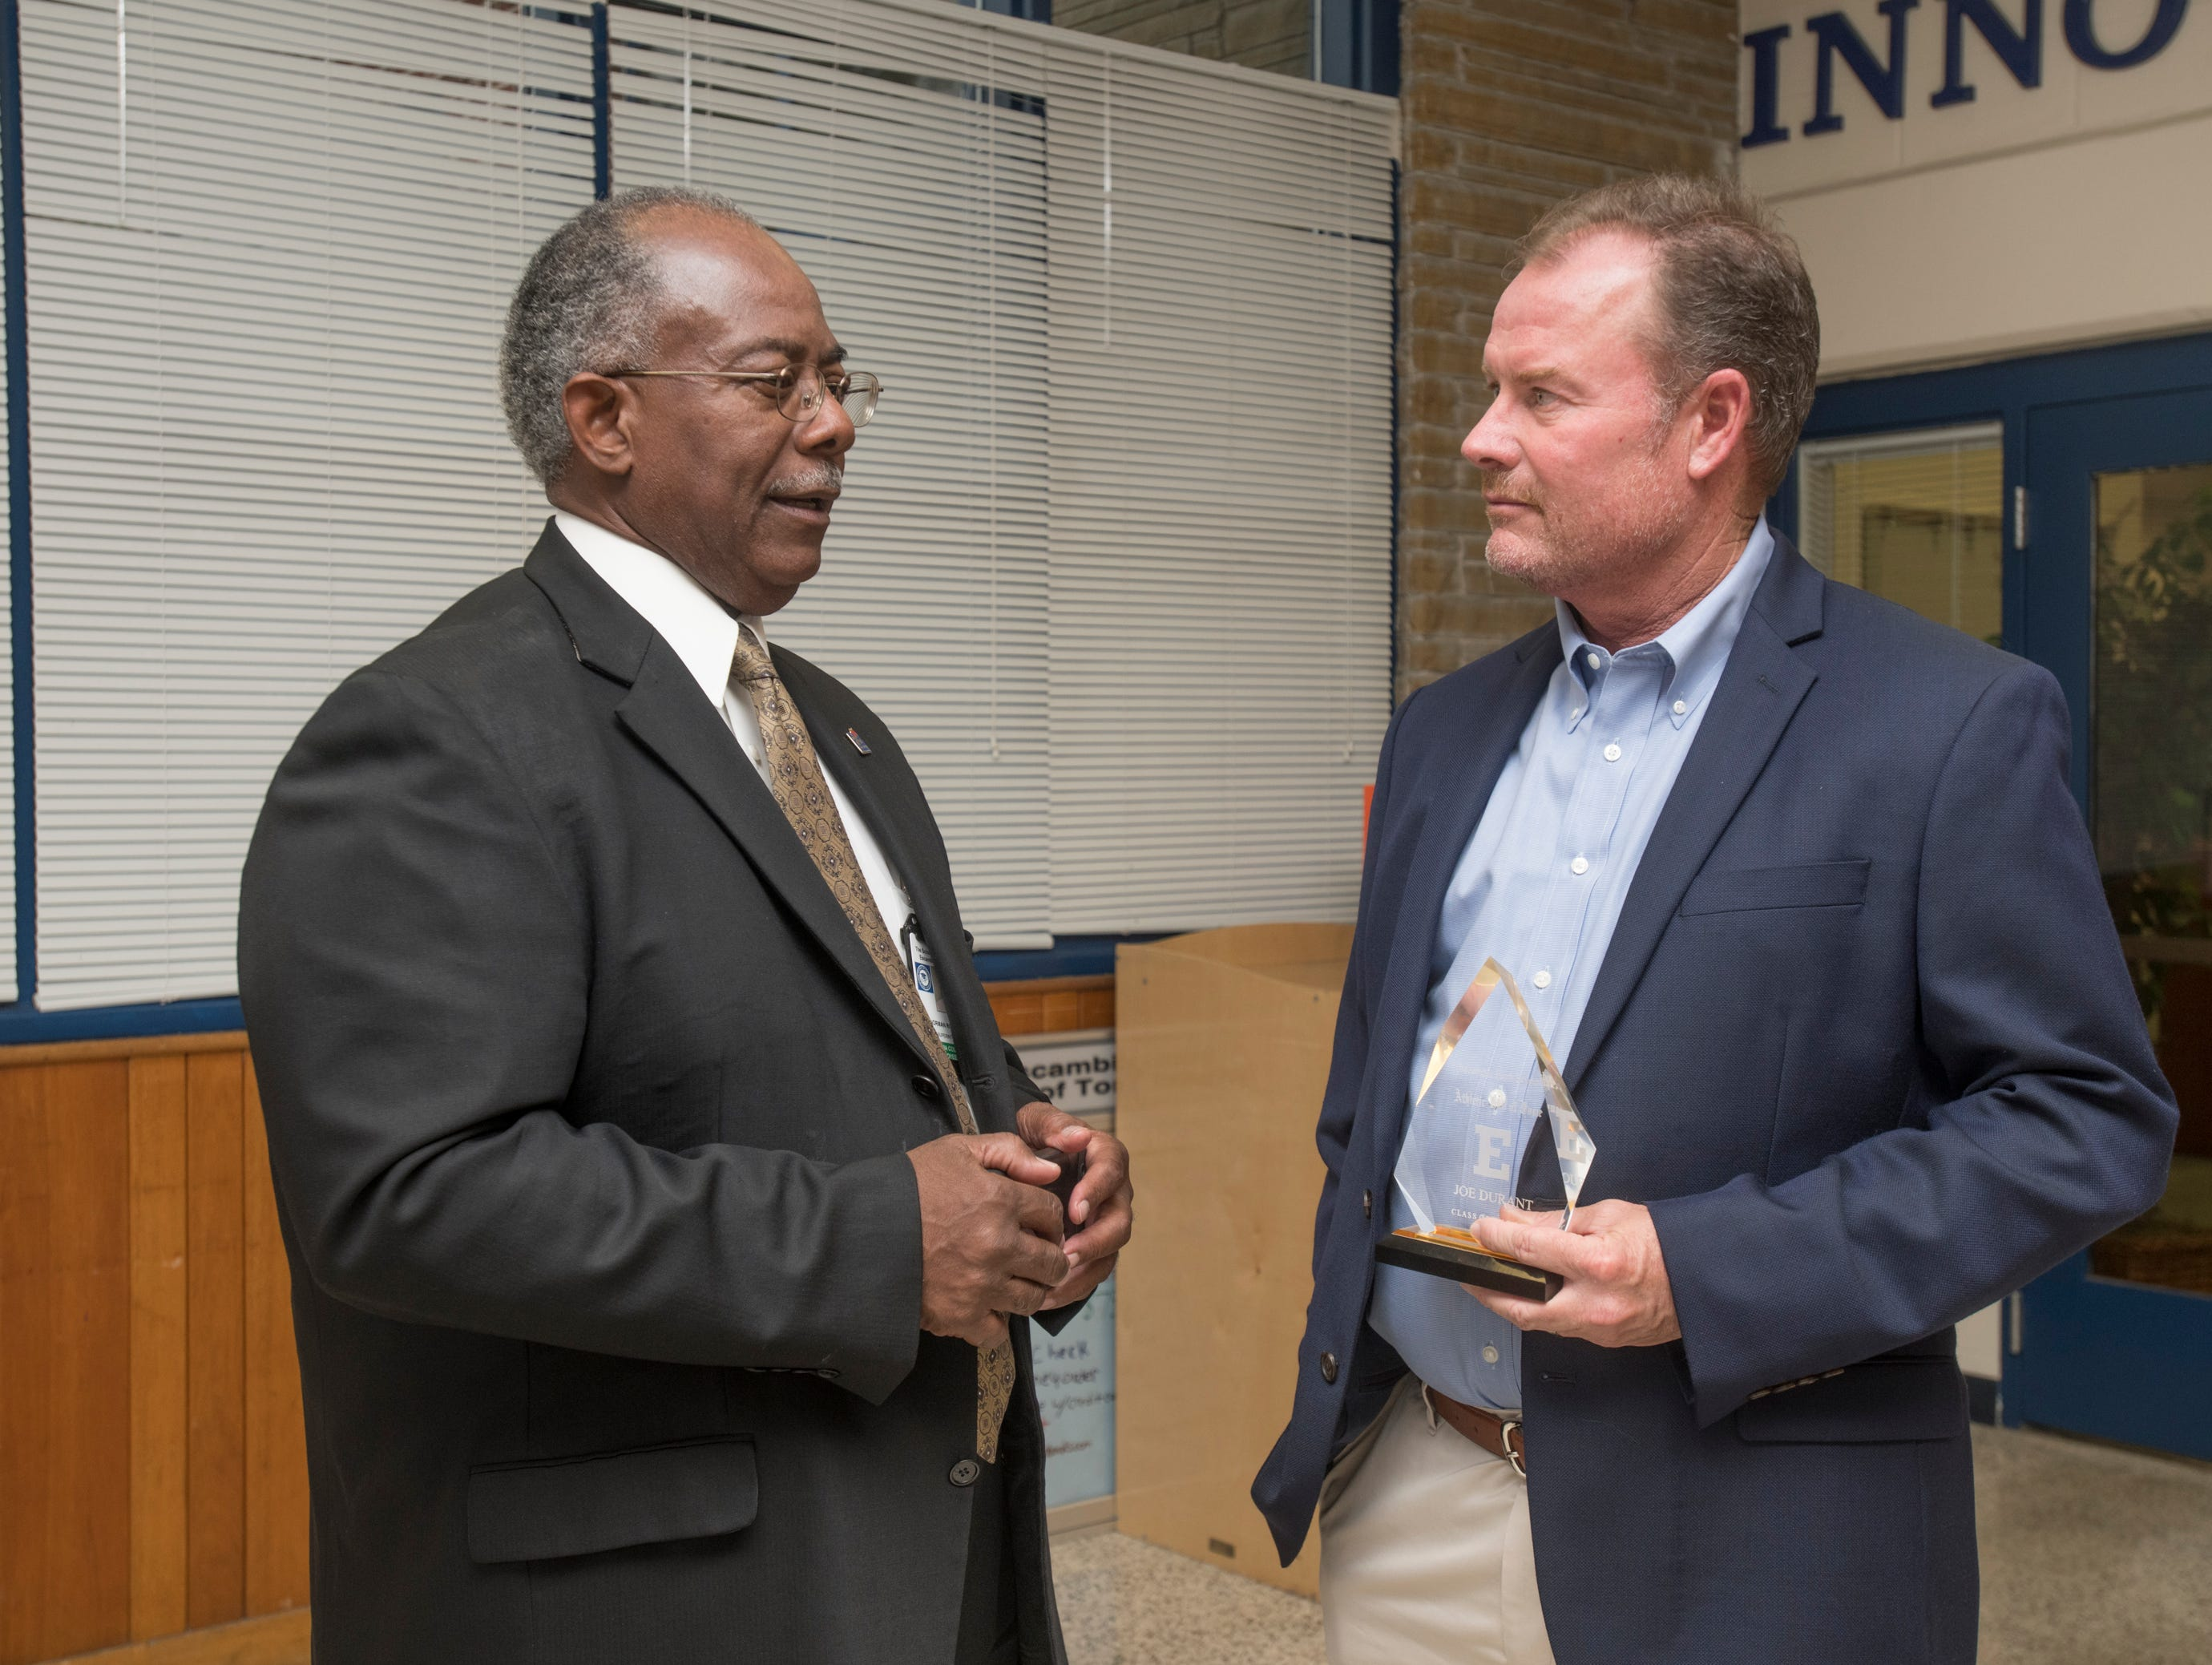 Deputy Superintendent Norman Ross, left, chats with Hall of Fame class of 2018-2019 inductee Joe Durant at Escambia High School in Pensacola on March 14, 2019.